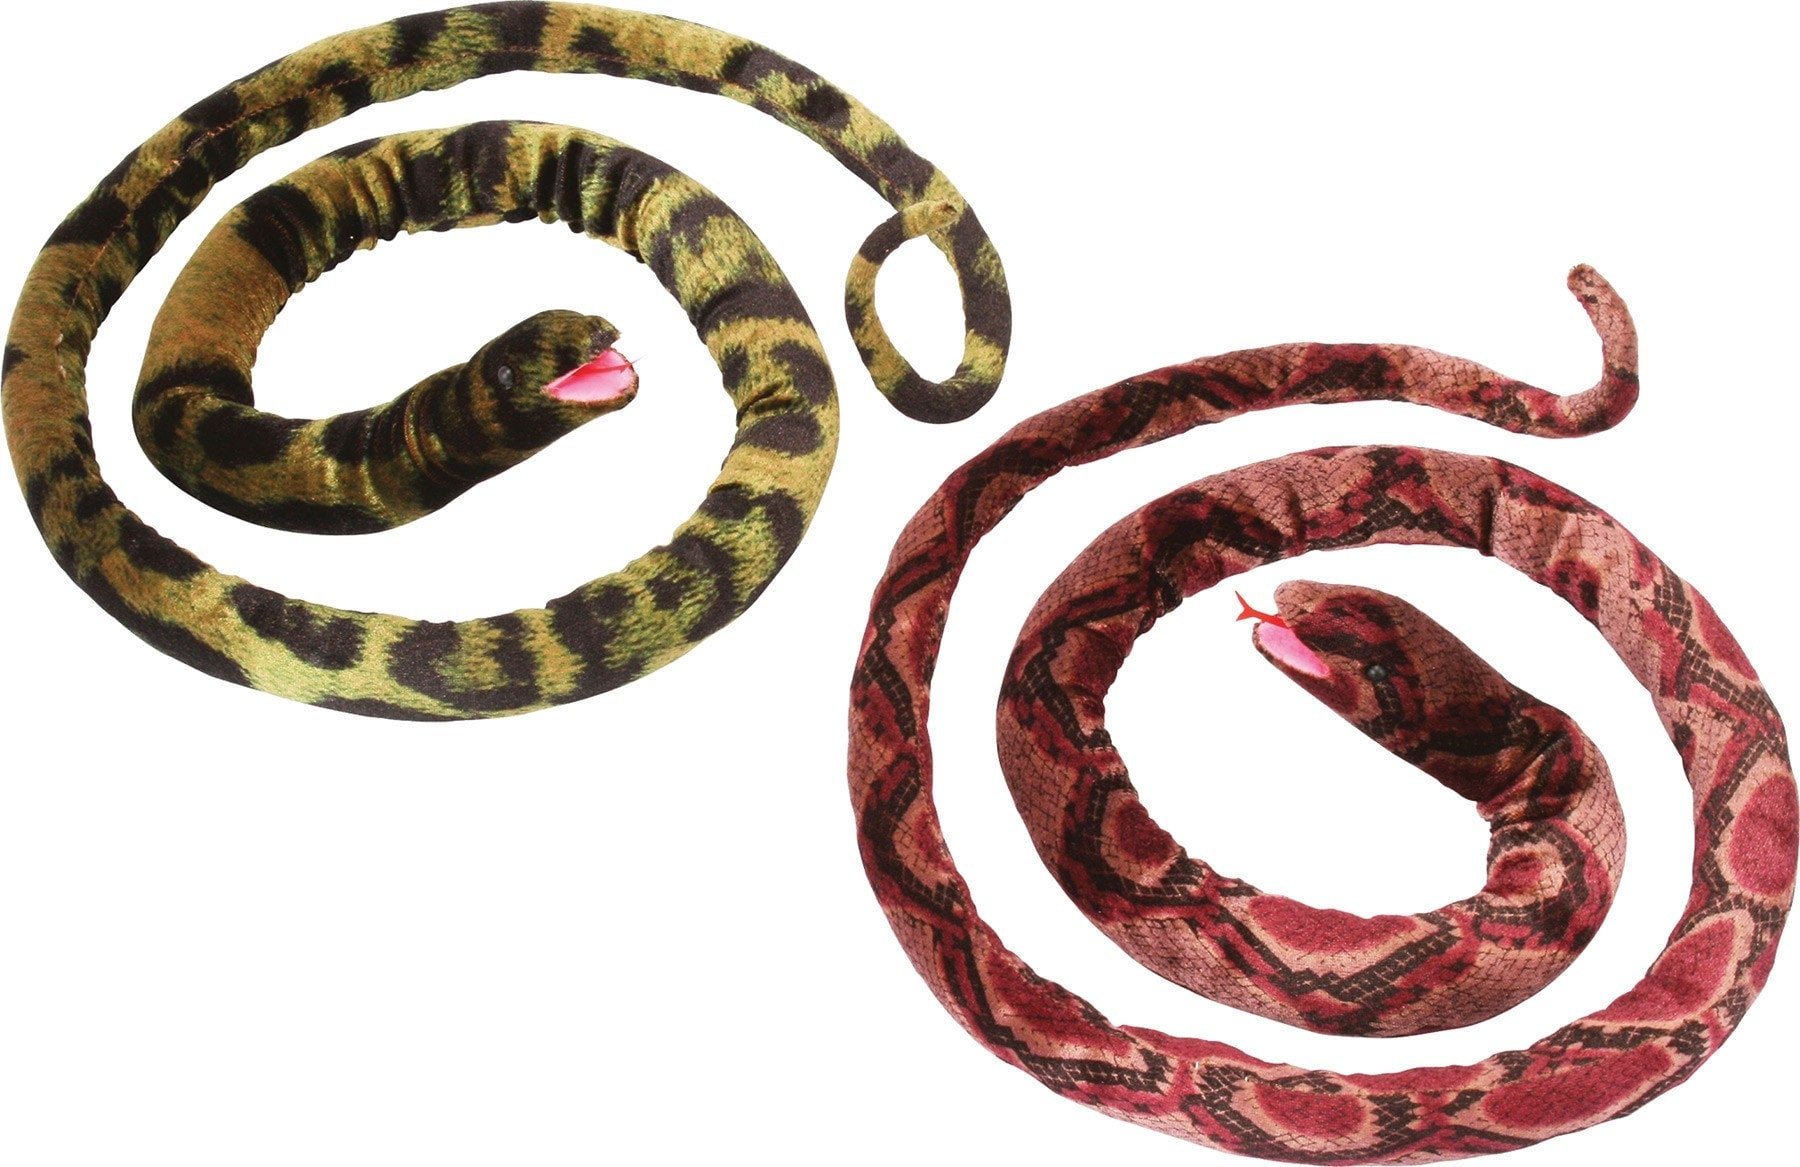 Morris 60 Inch Wild Jungle Snake - MaxWigs